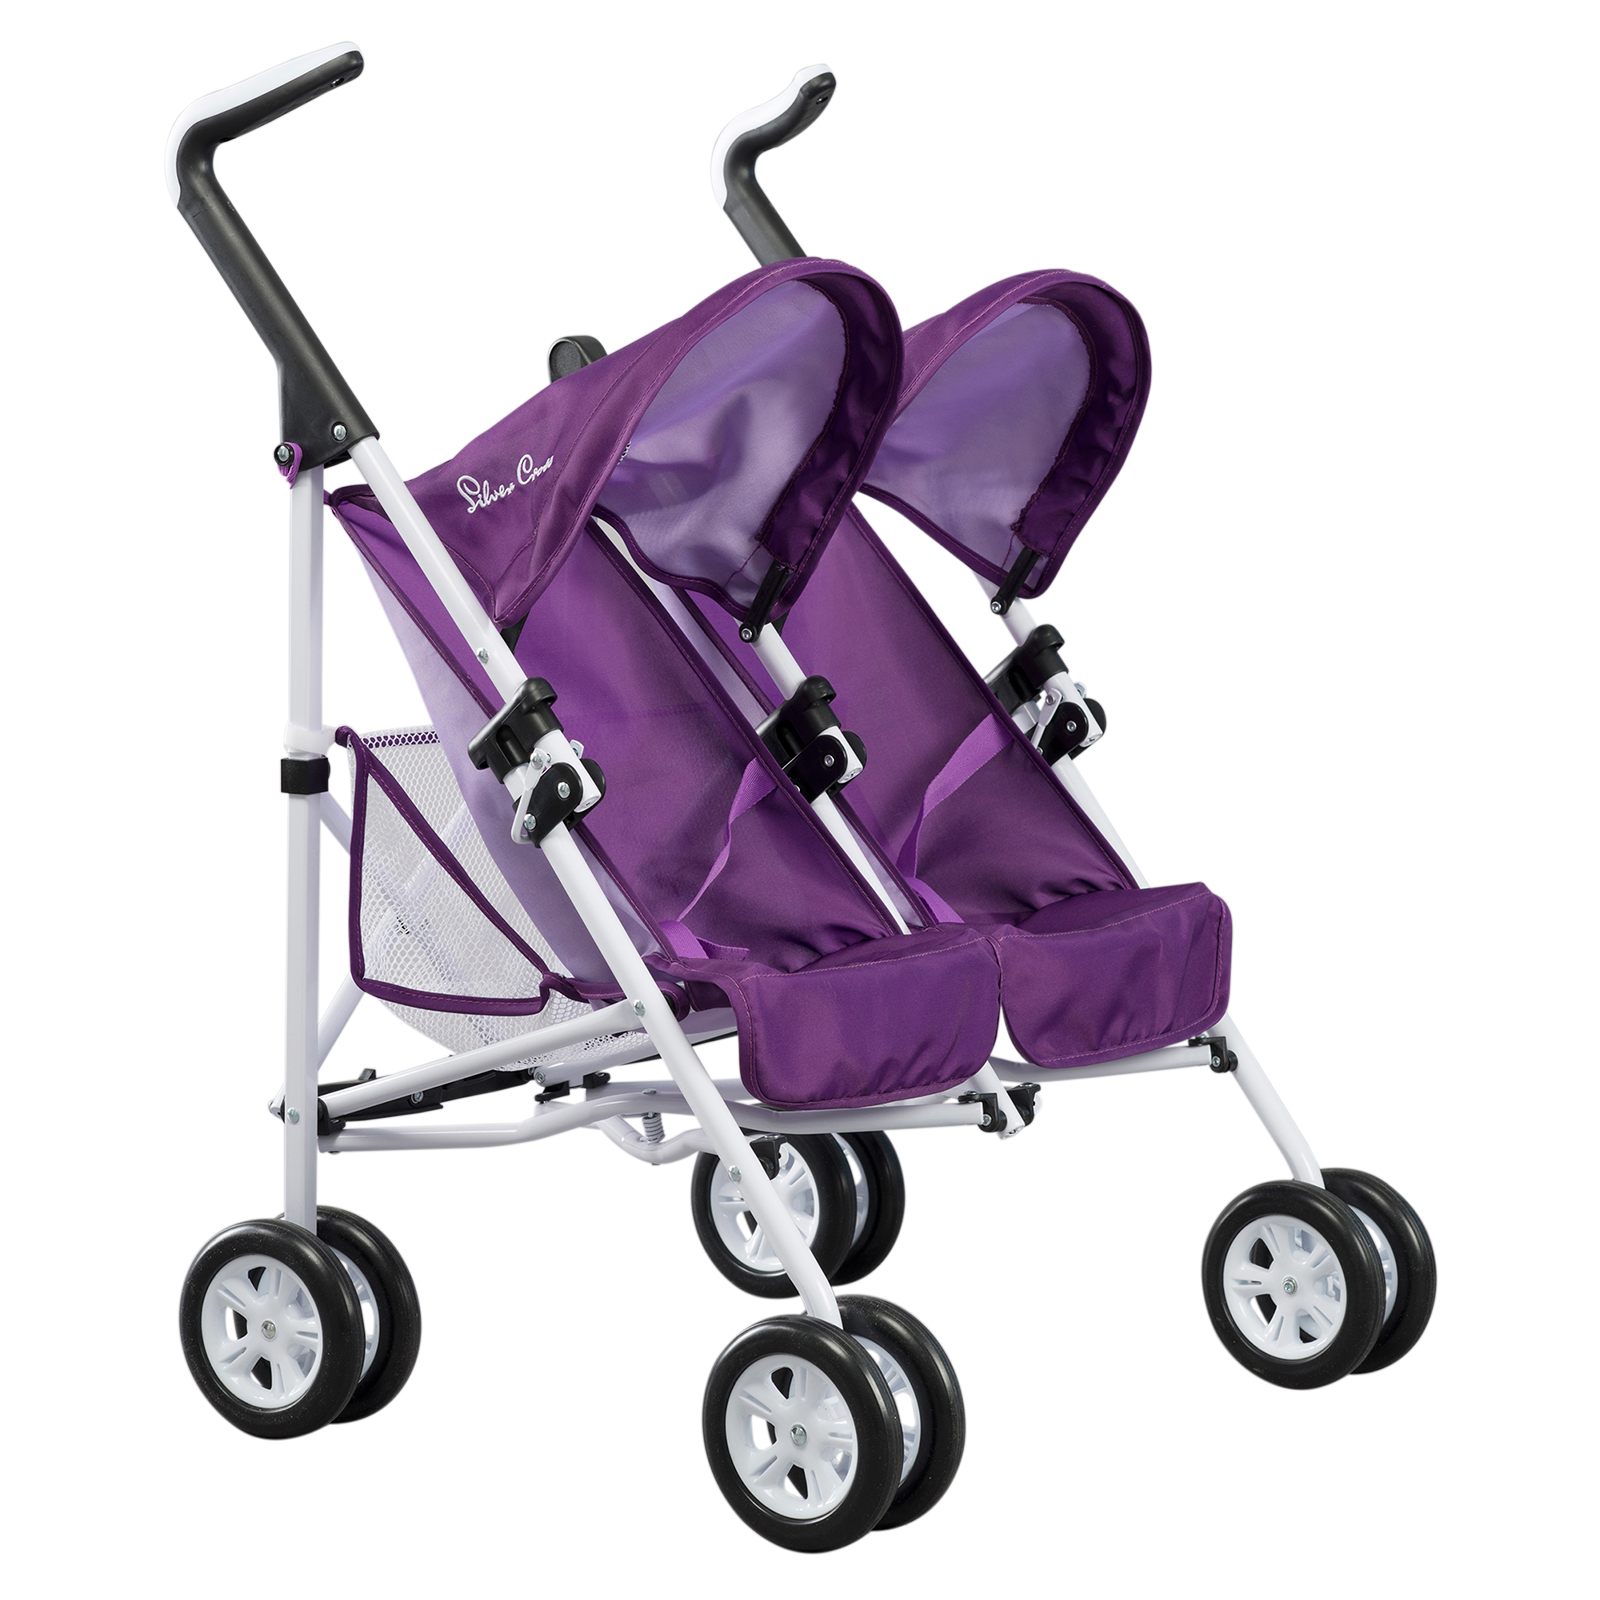 Silver Cross Buggy Toy Silver Cross Pop Duo Dolls Pram Damson Purple Girls Toy